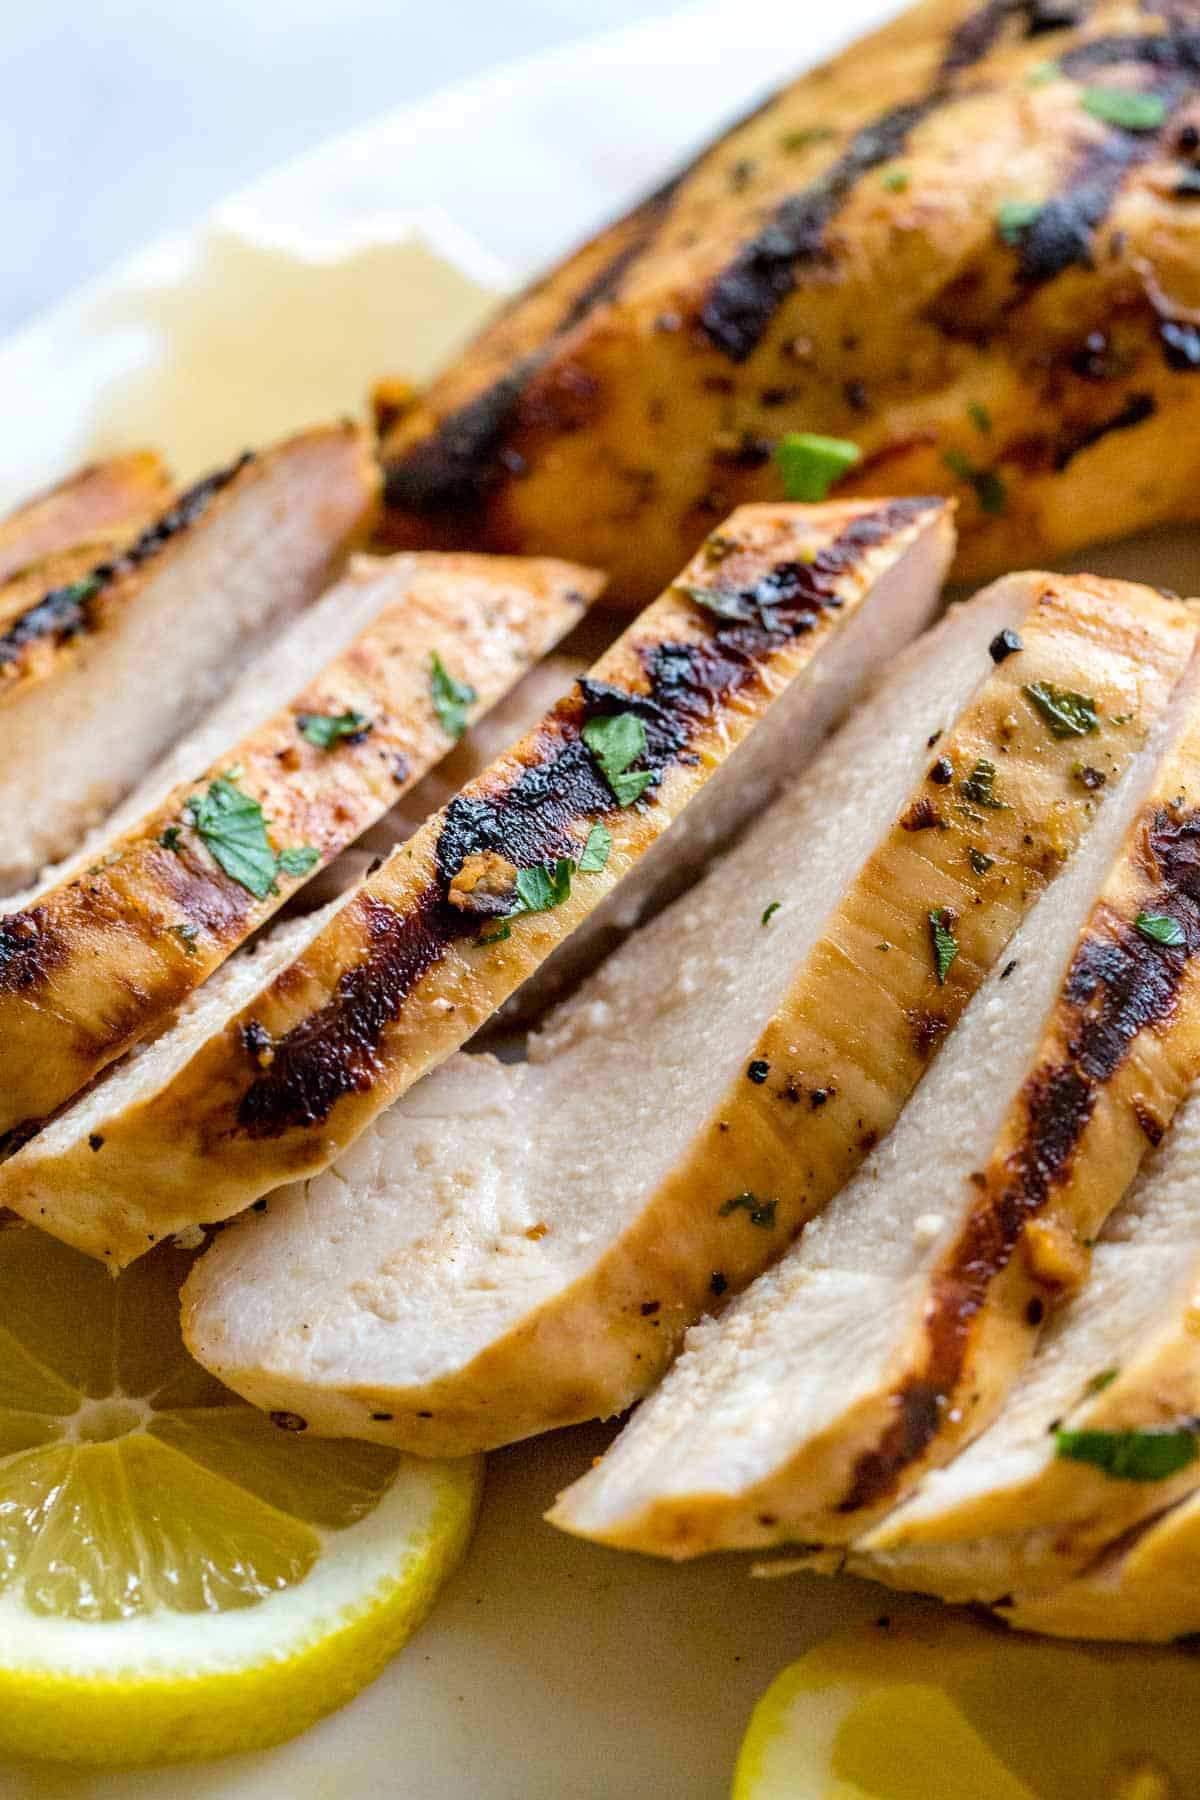 Flavorful chicken breasts sliced apart on a platter